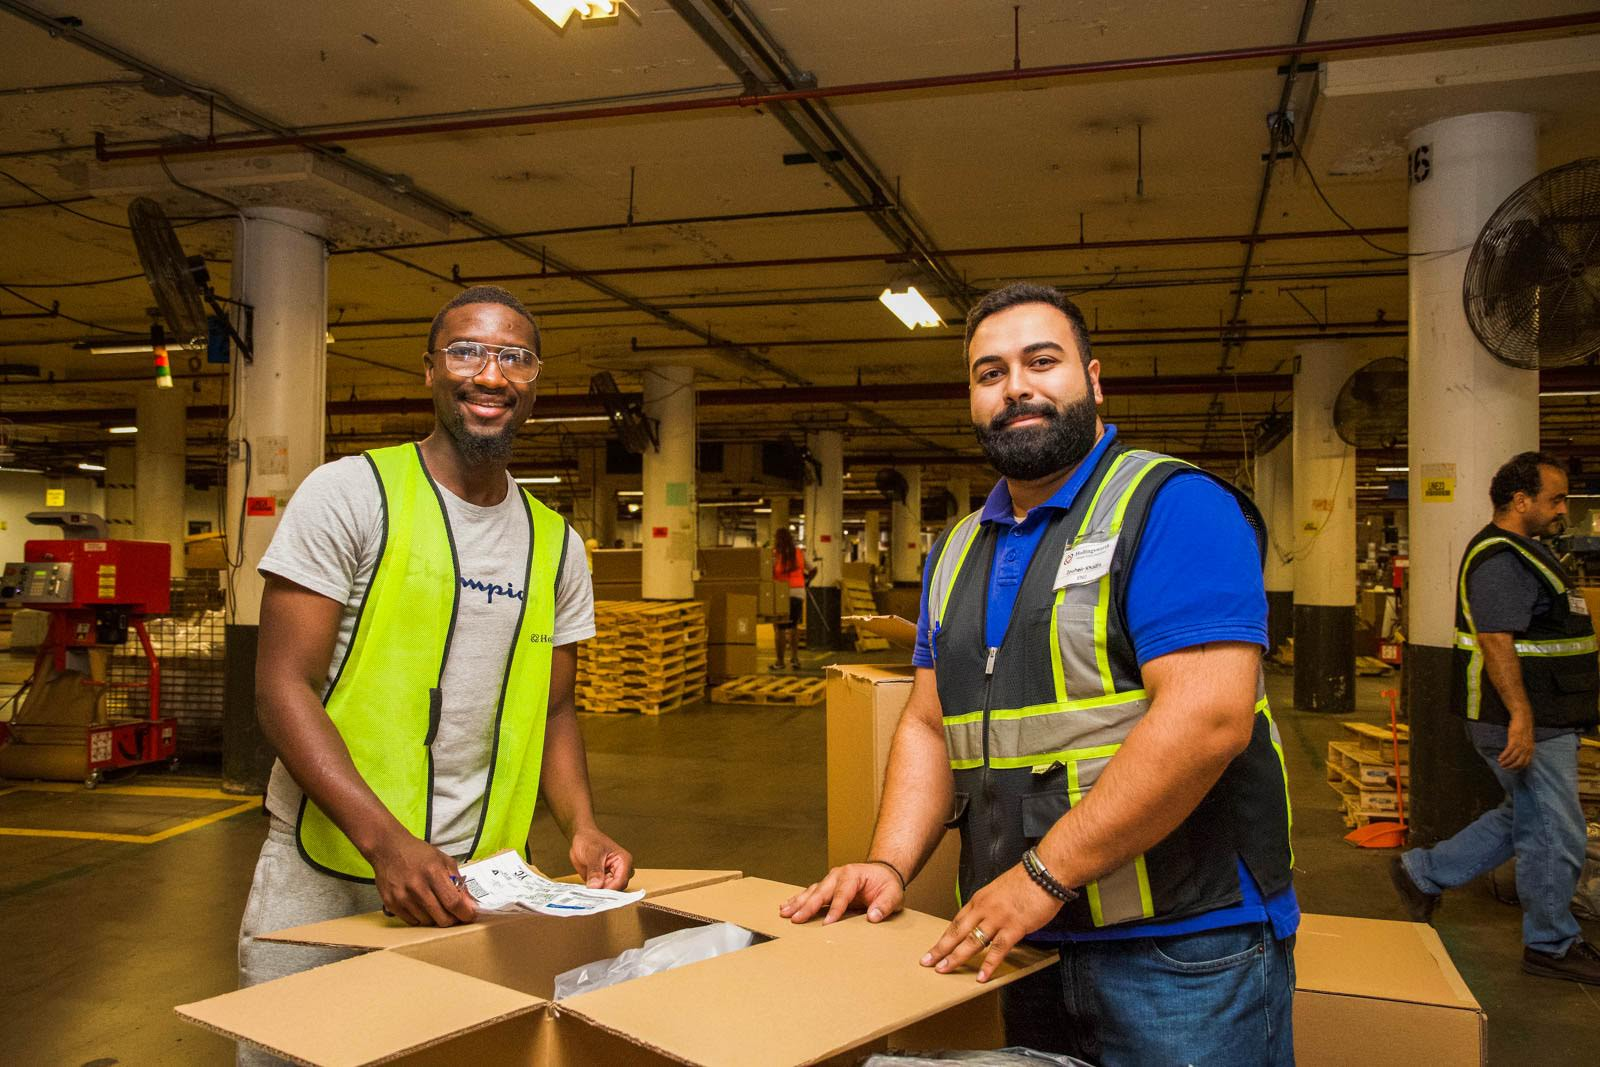 Two smiling warehouse employees unbox a package